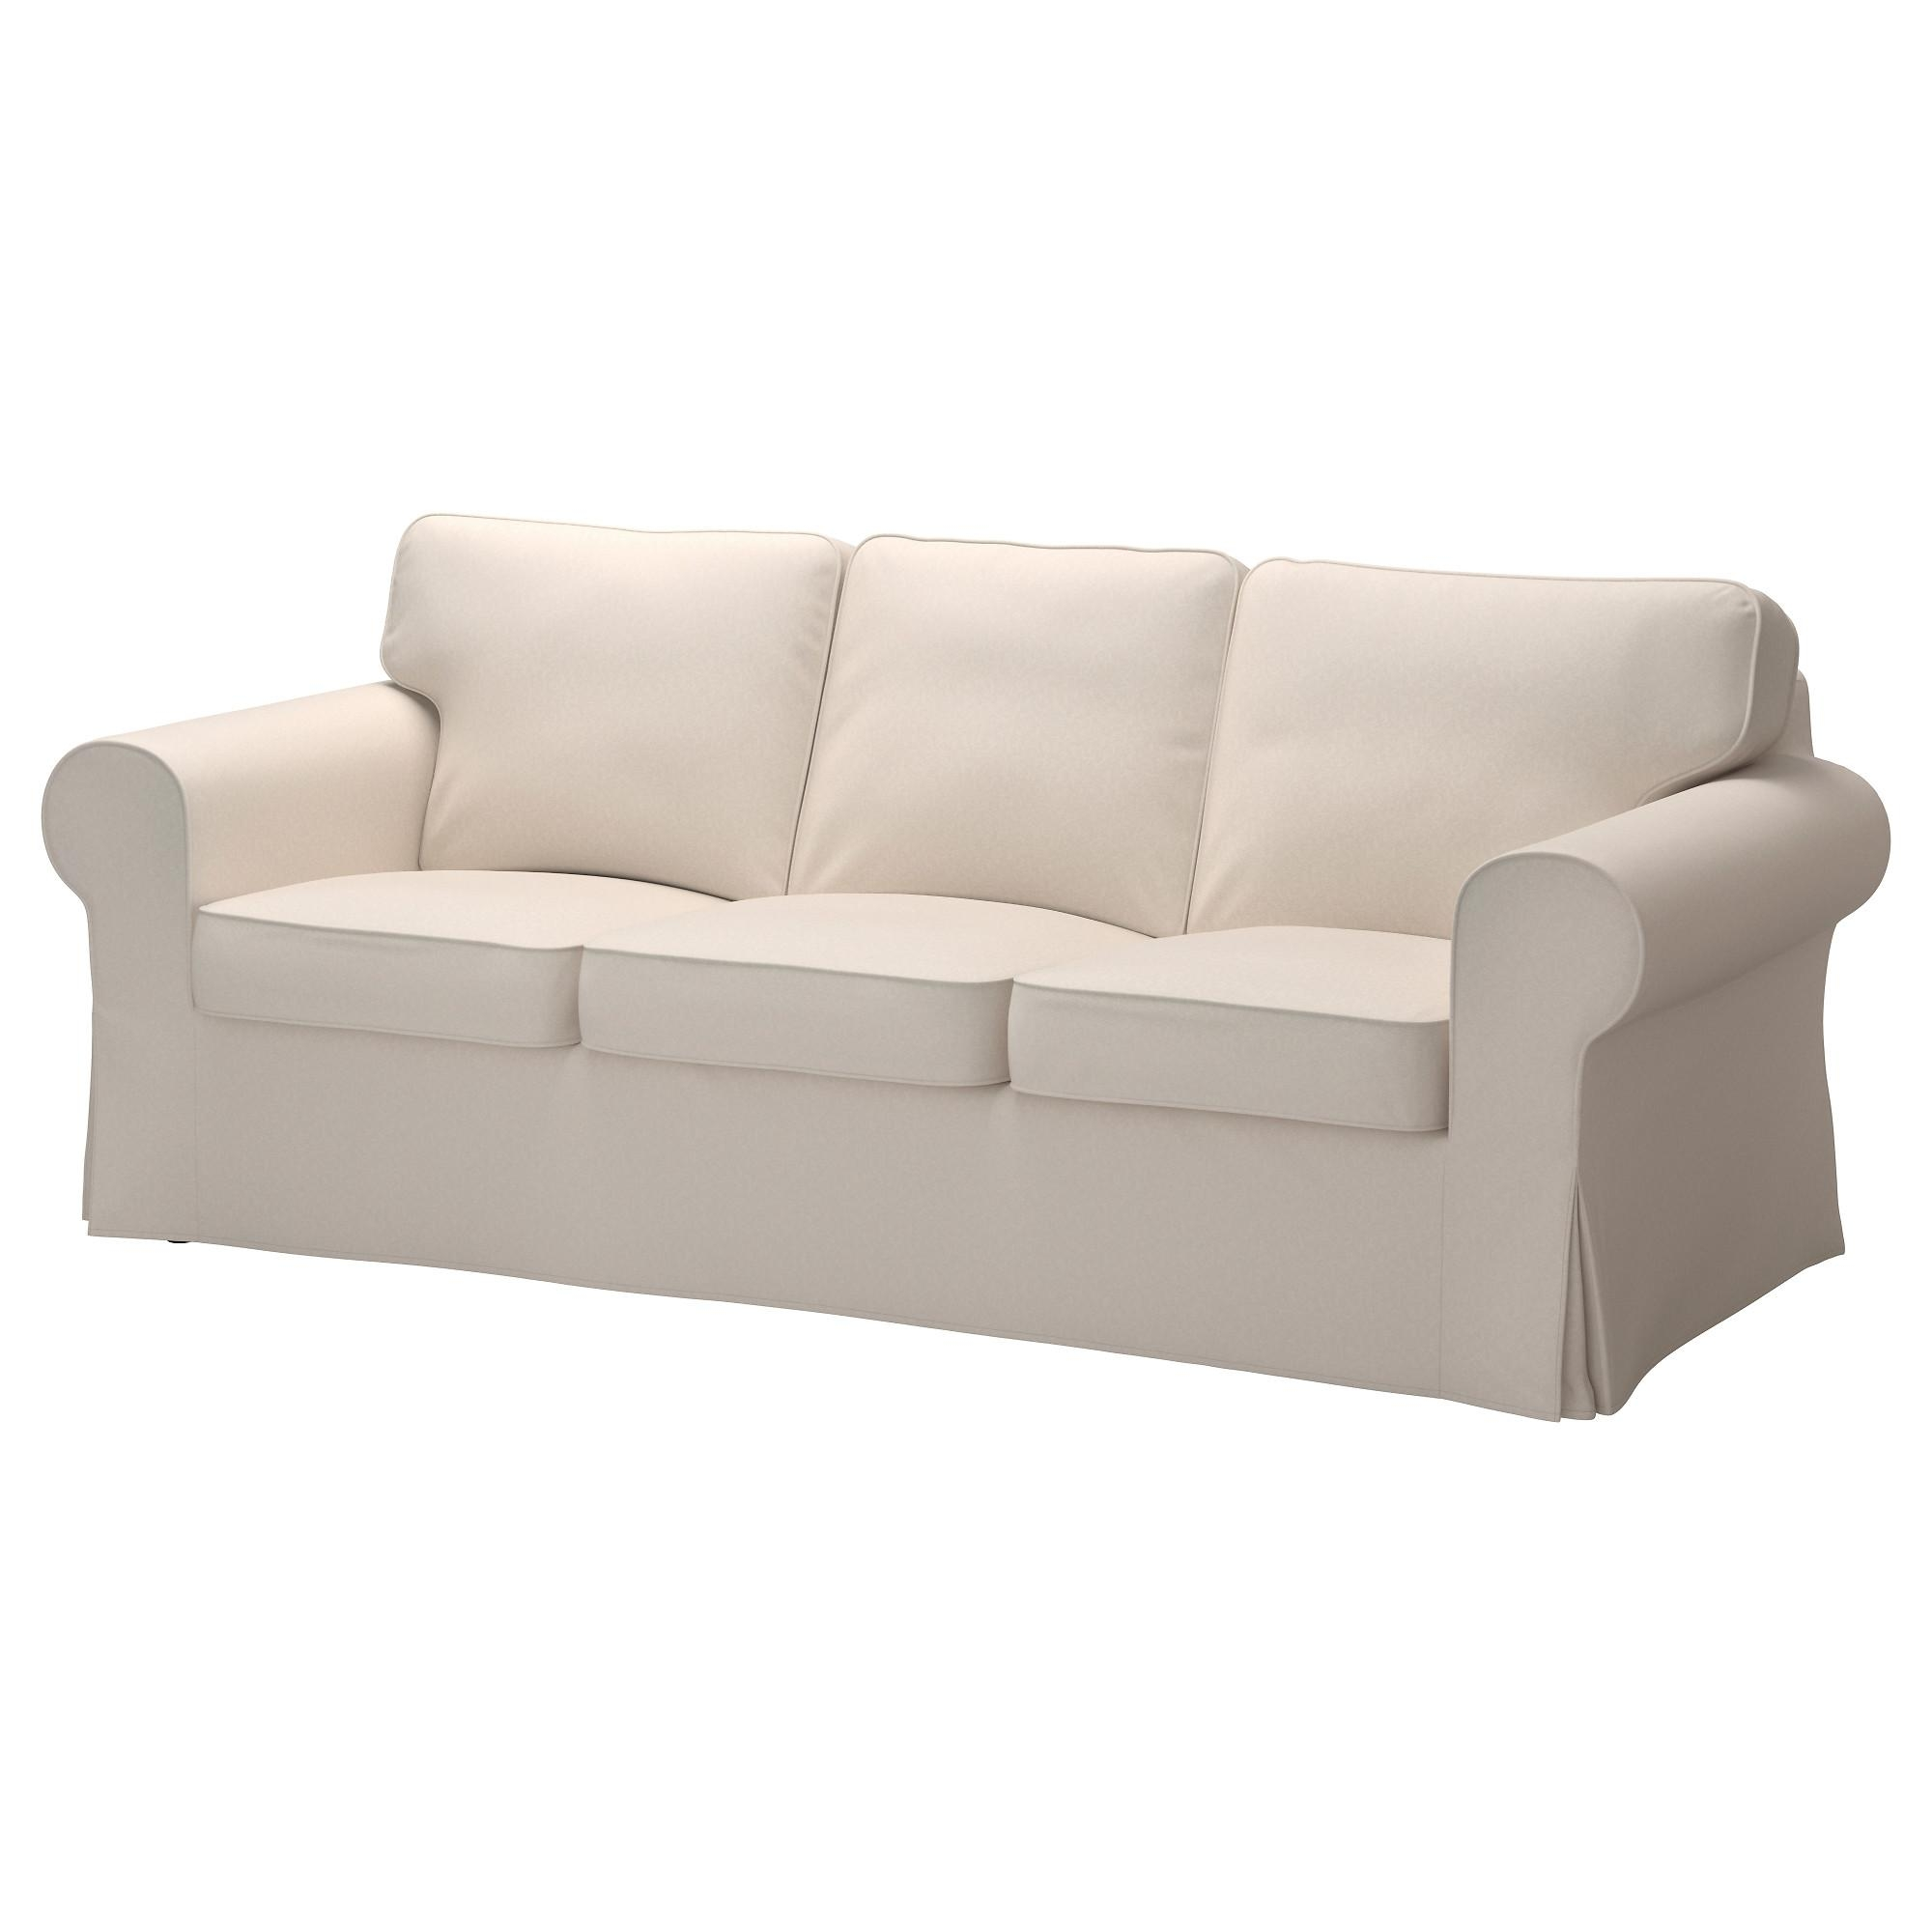 Ektorp Sofa – Lofallet Beige – Ikea Throughout Beige Sofas (Image 6 of 20)